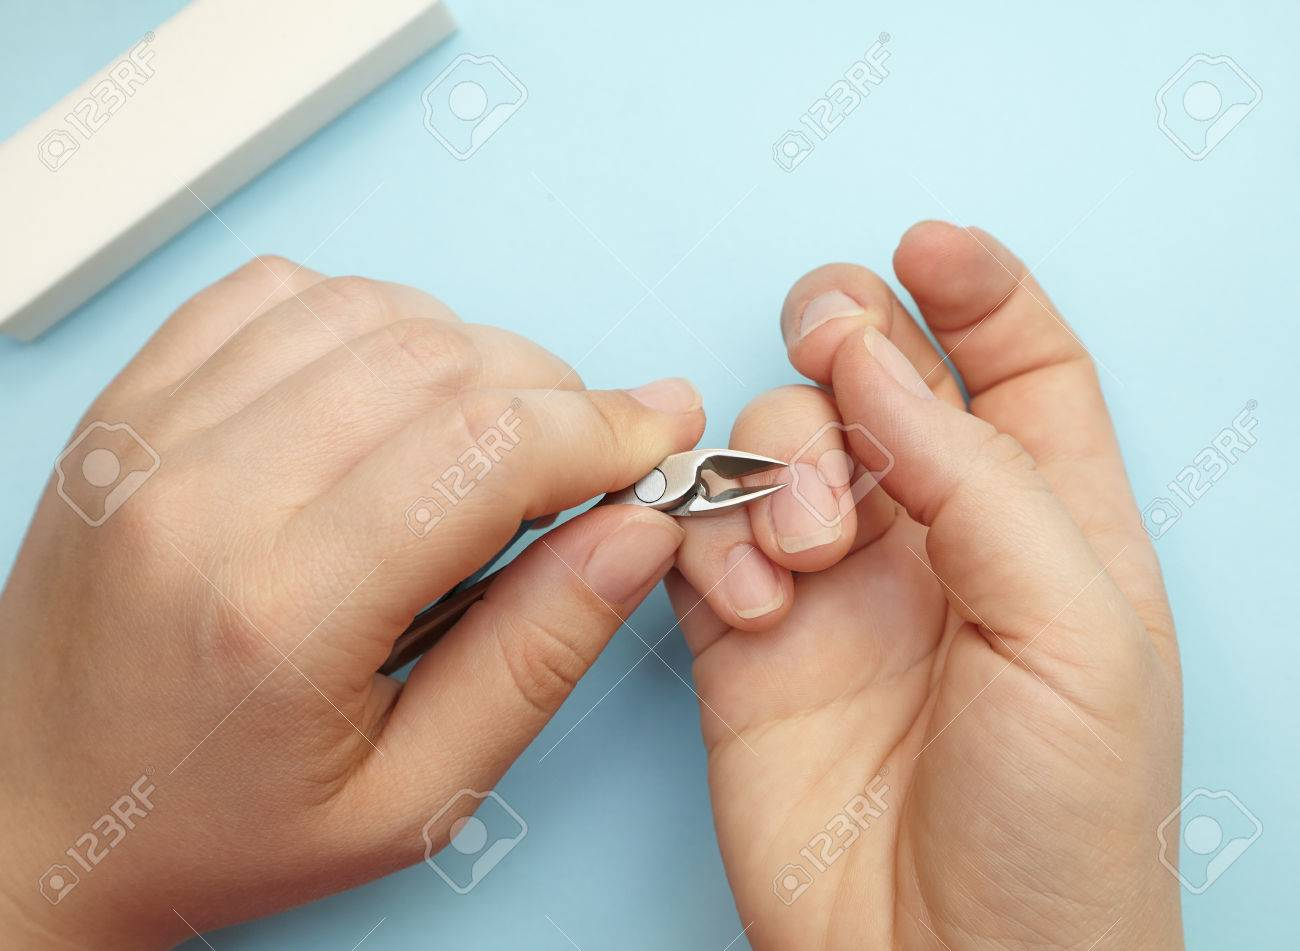 Manicure Of A Woman\'s Hand, Cuts Cuticles By Cut Nippers, Self-care ...